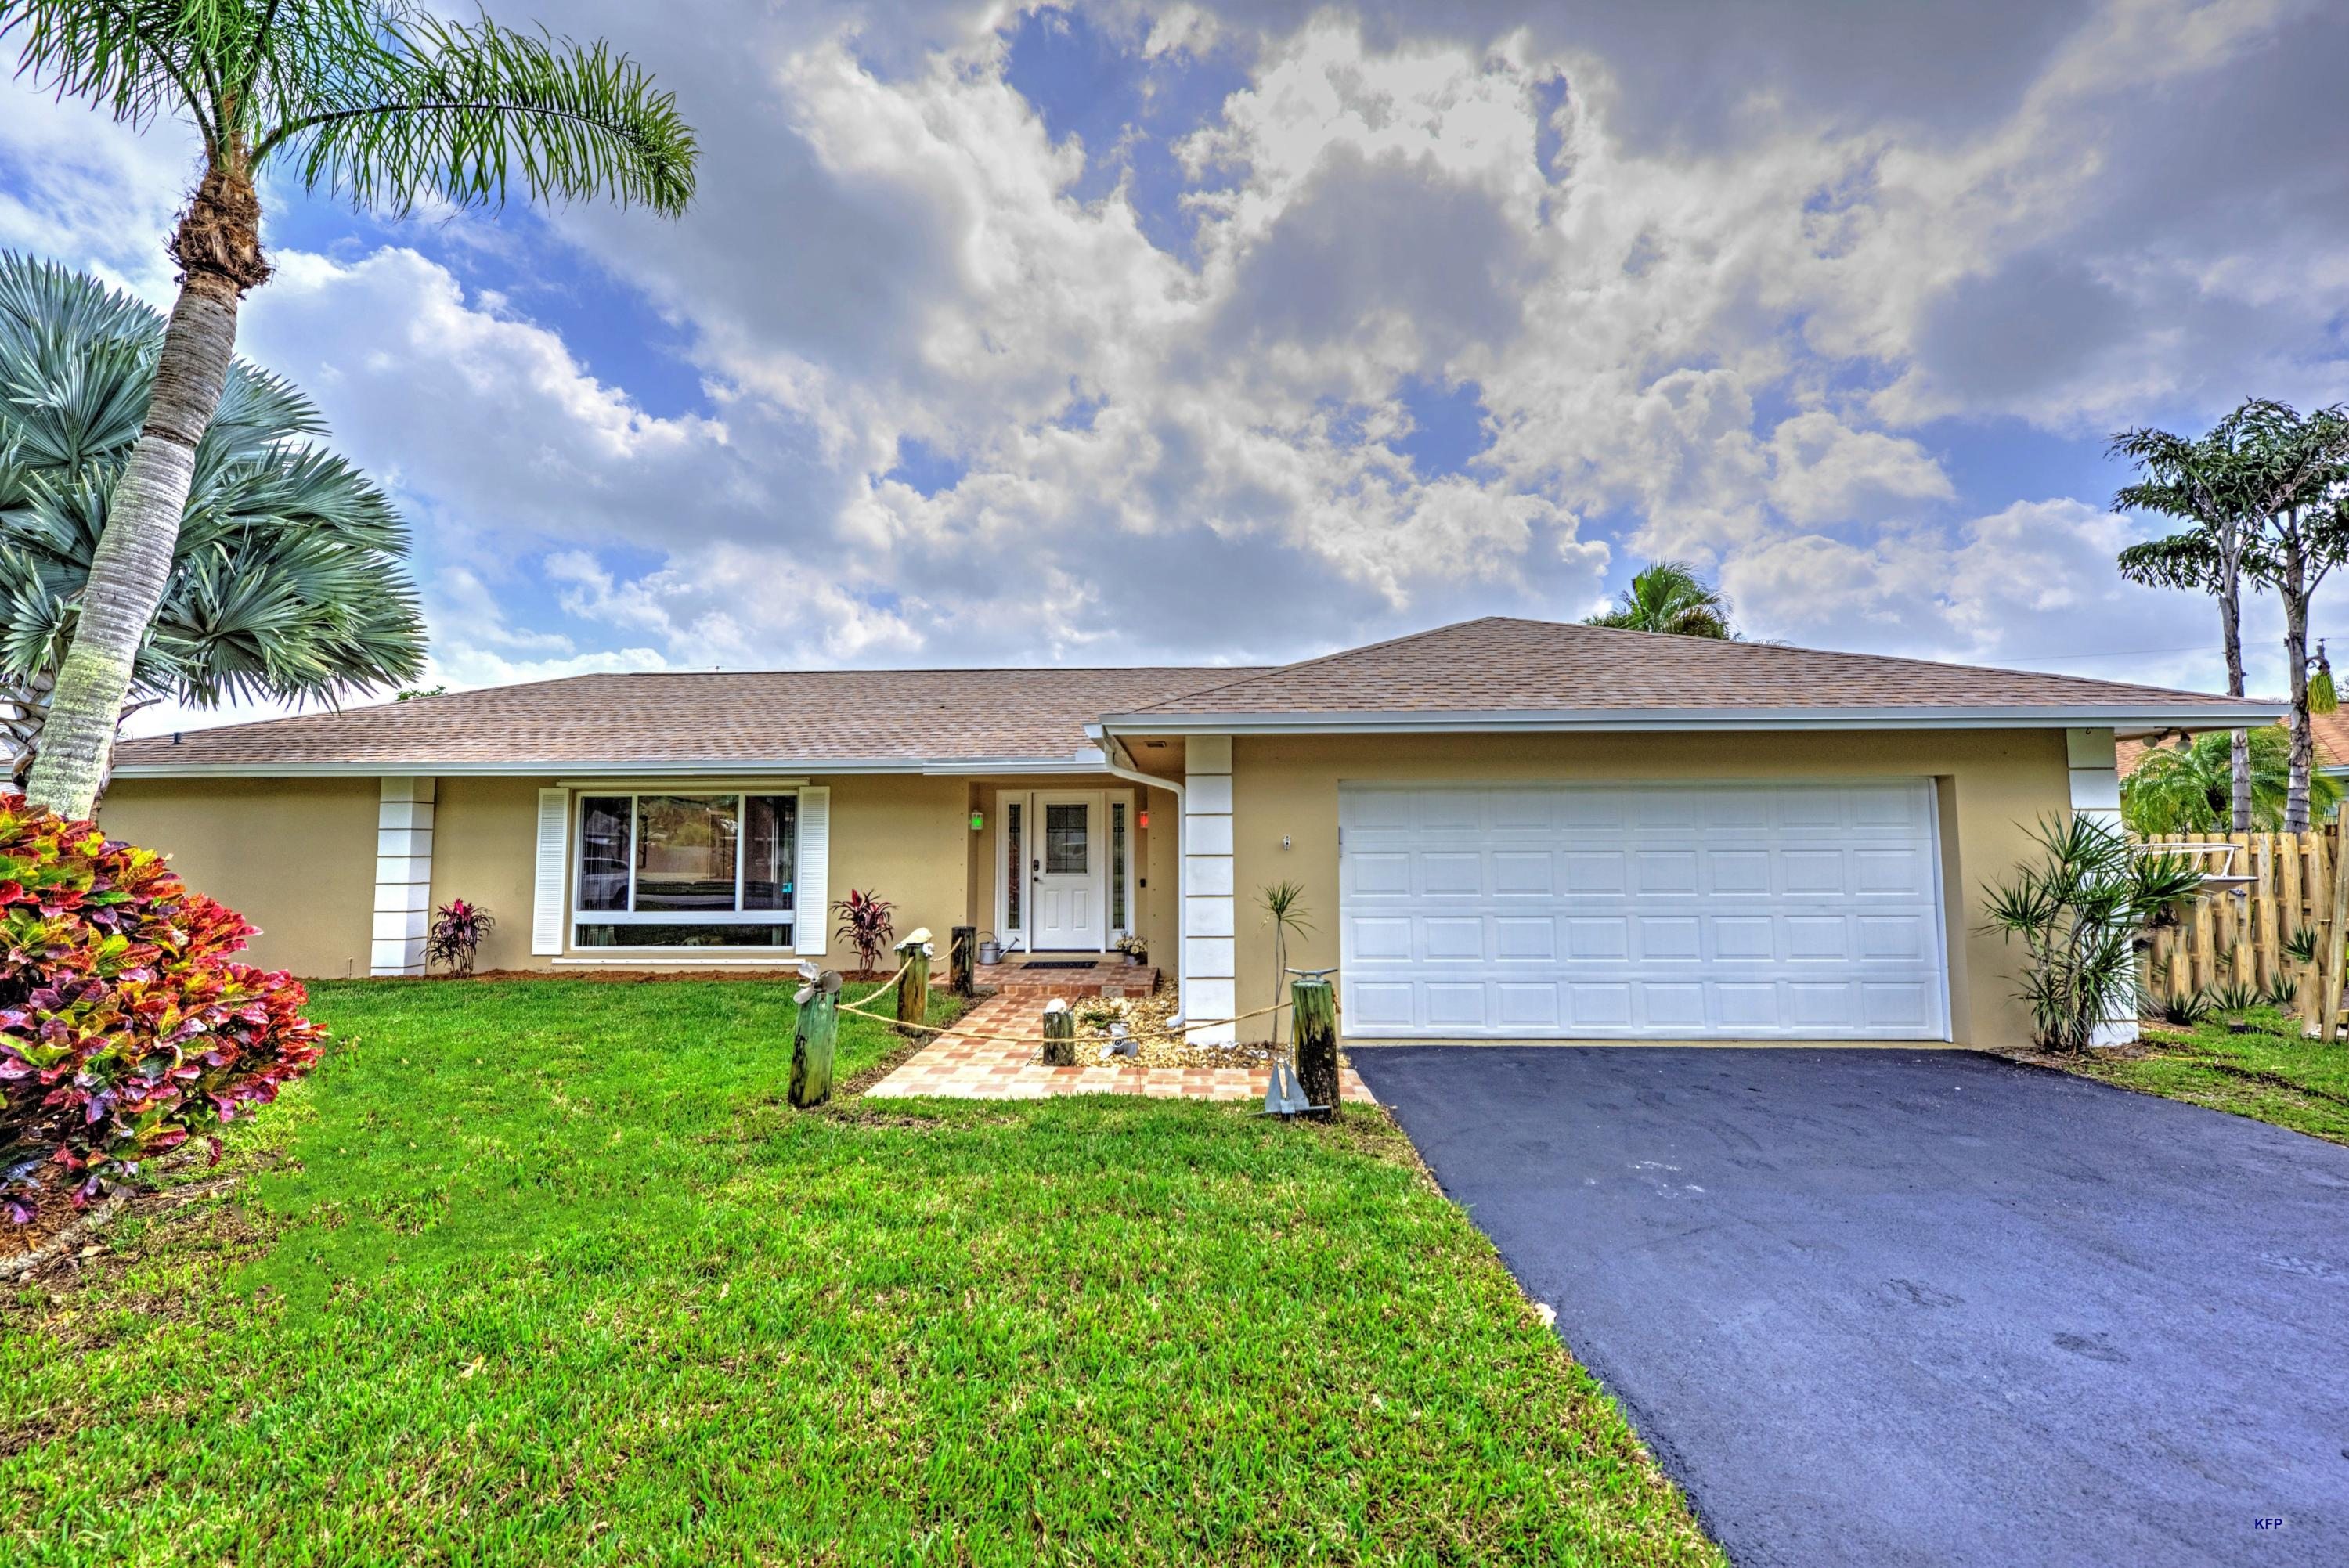 355 Country Club Drive, Tequesta, Florida 33469, 3 Bedrooms Bedrooms, ,2 BathroomsBathrooms,A,Single family,Country Club,RX-10602401